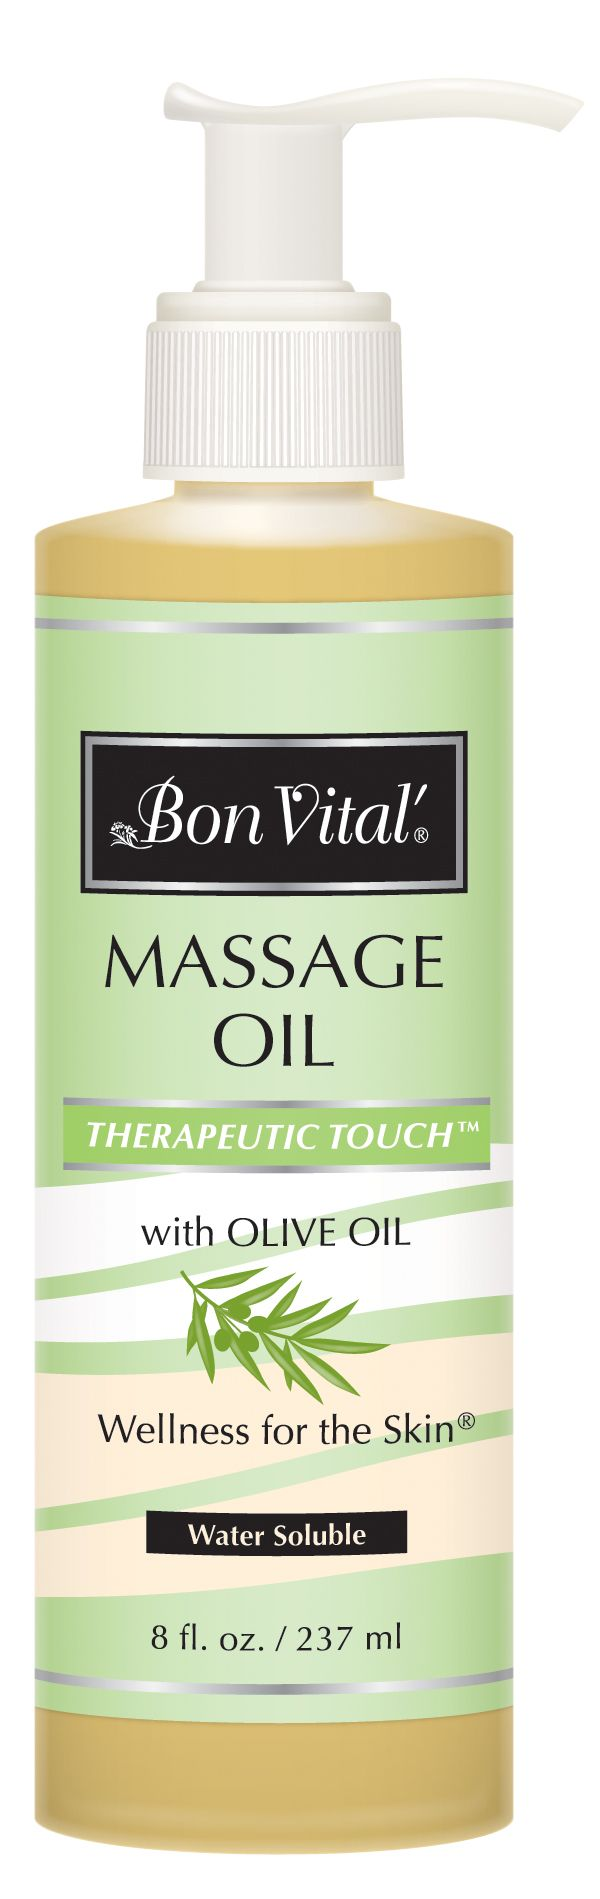 Therapeutic Touch Massage Oil 8 oz | Bon Vital'